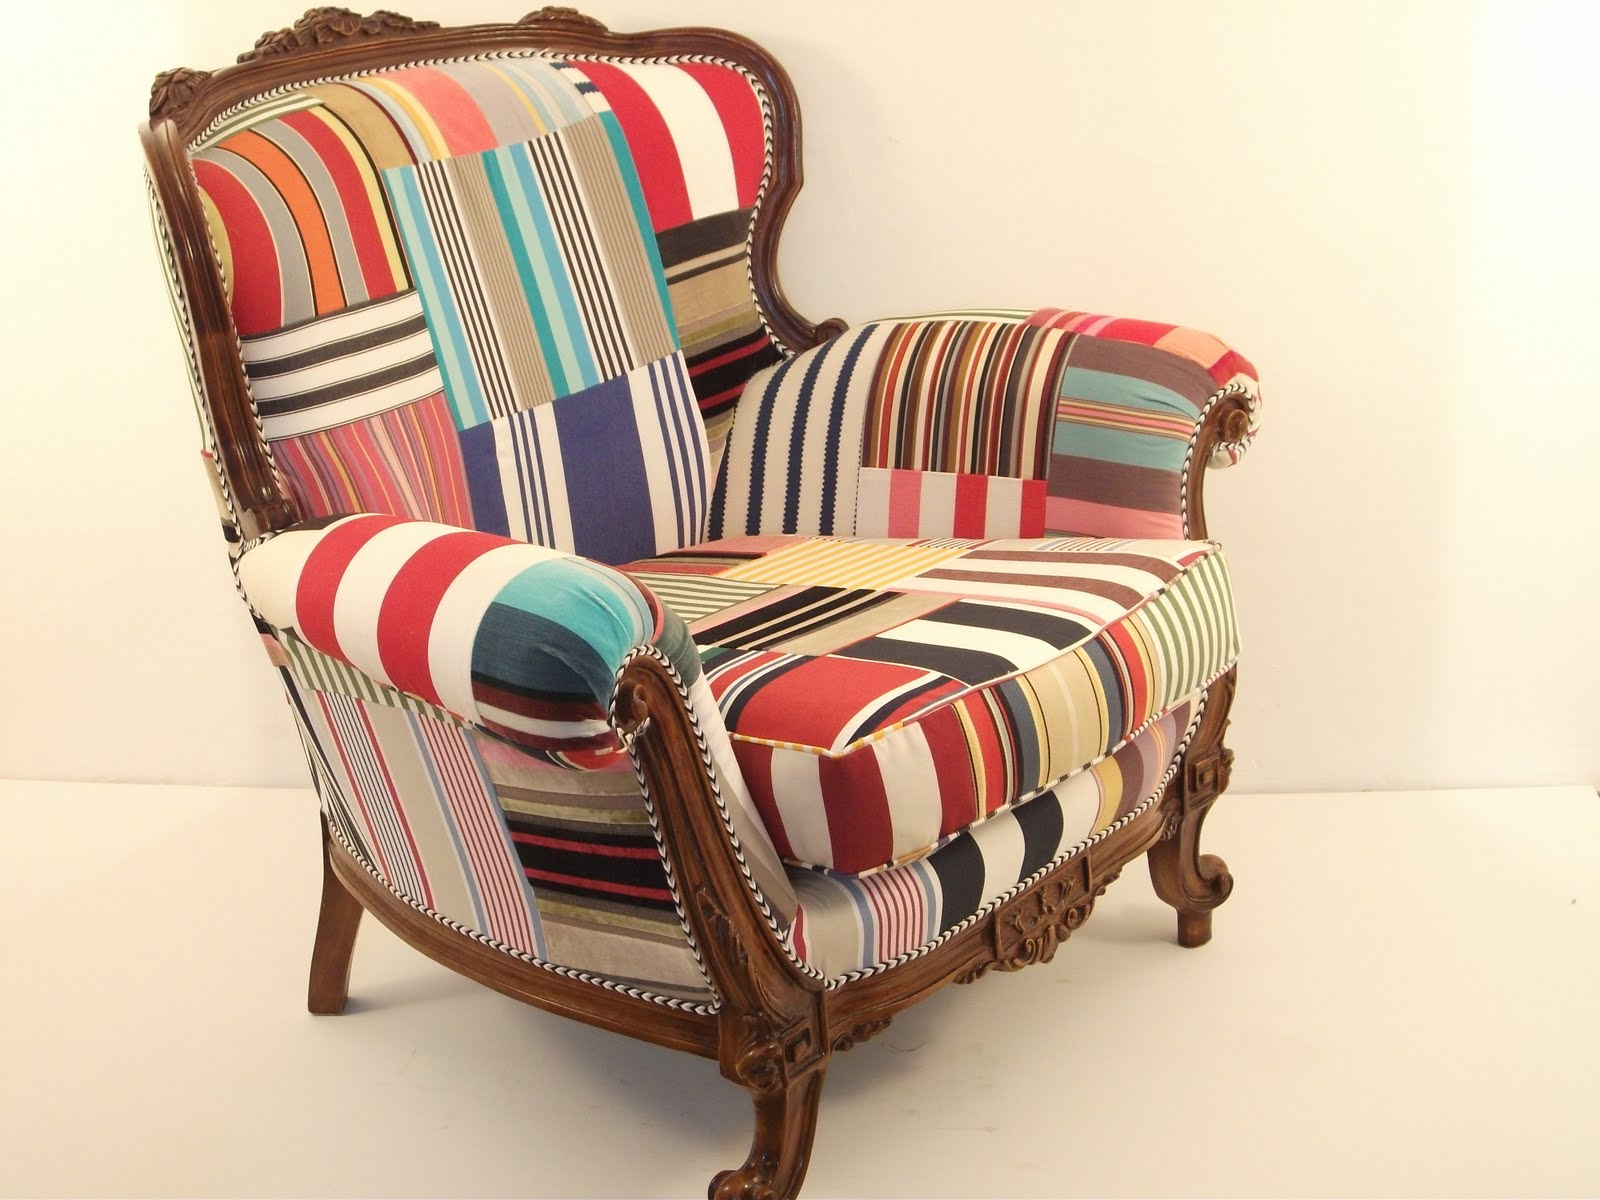 Patchwork Upholstered Chair Inspirations on Pinterest ...